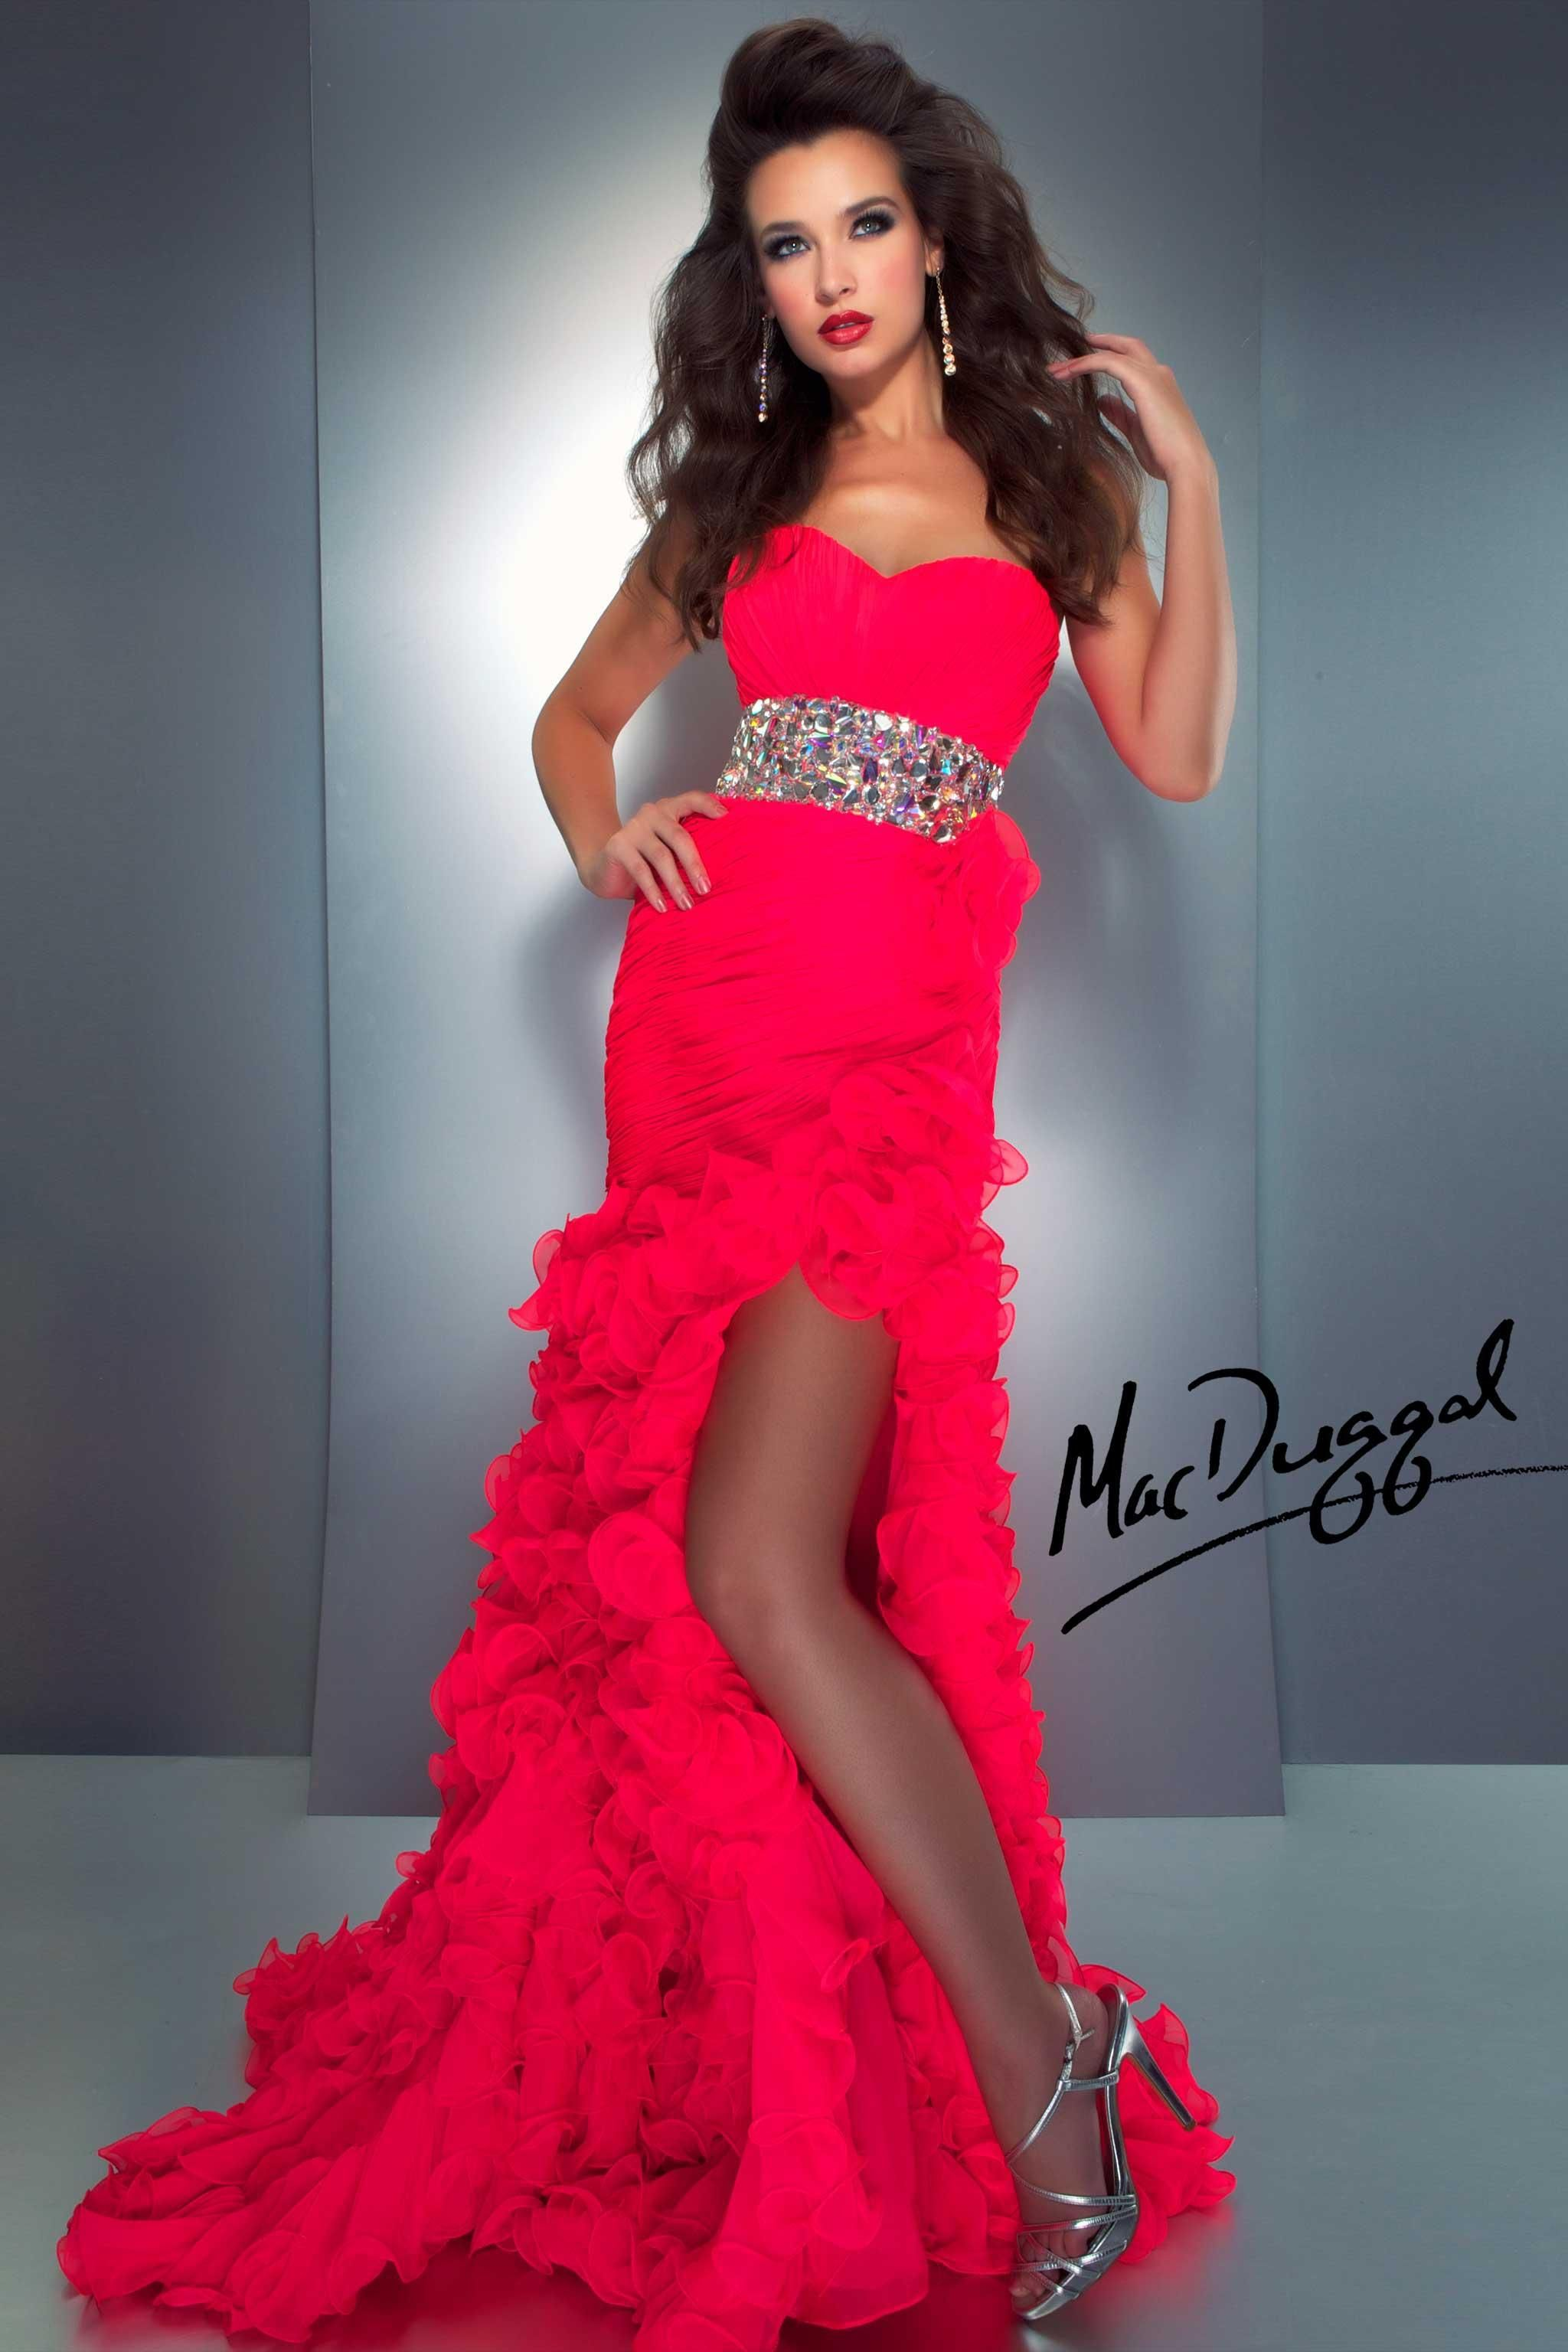 looking for affordable yet extravagant prom dresses? stop in to ...